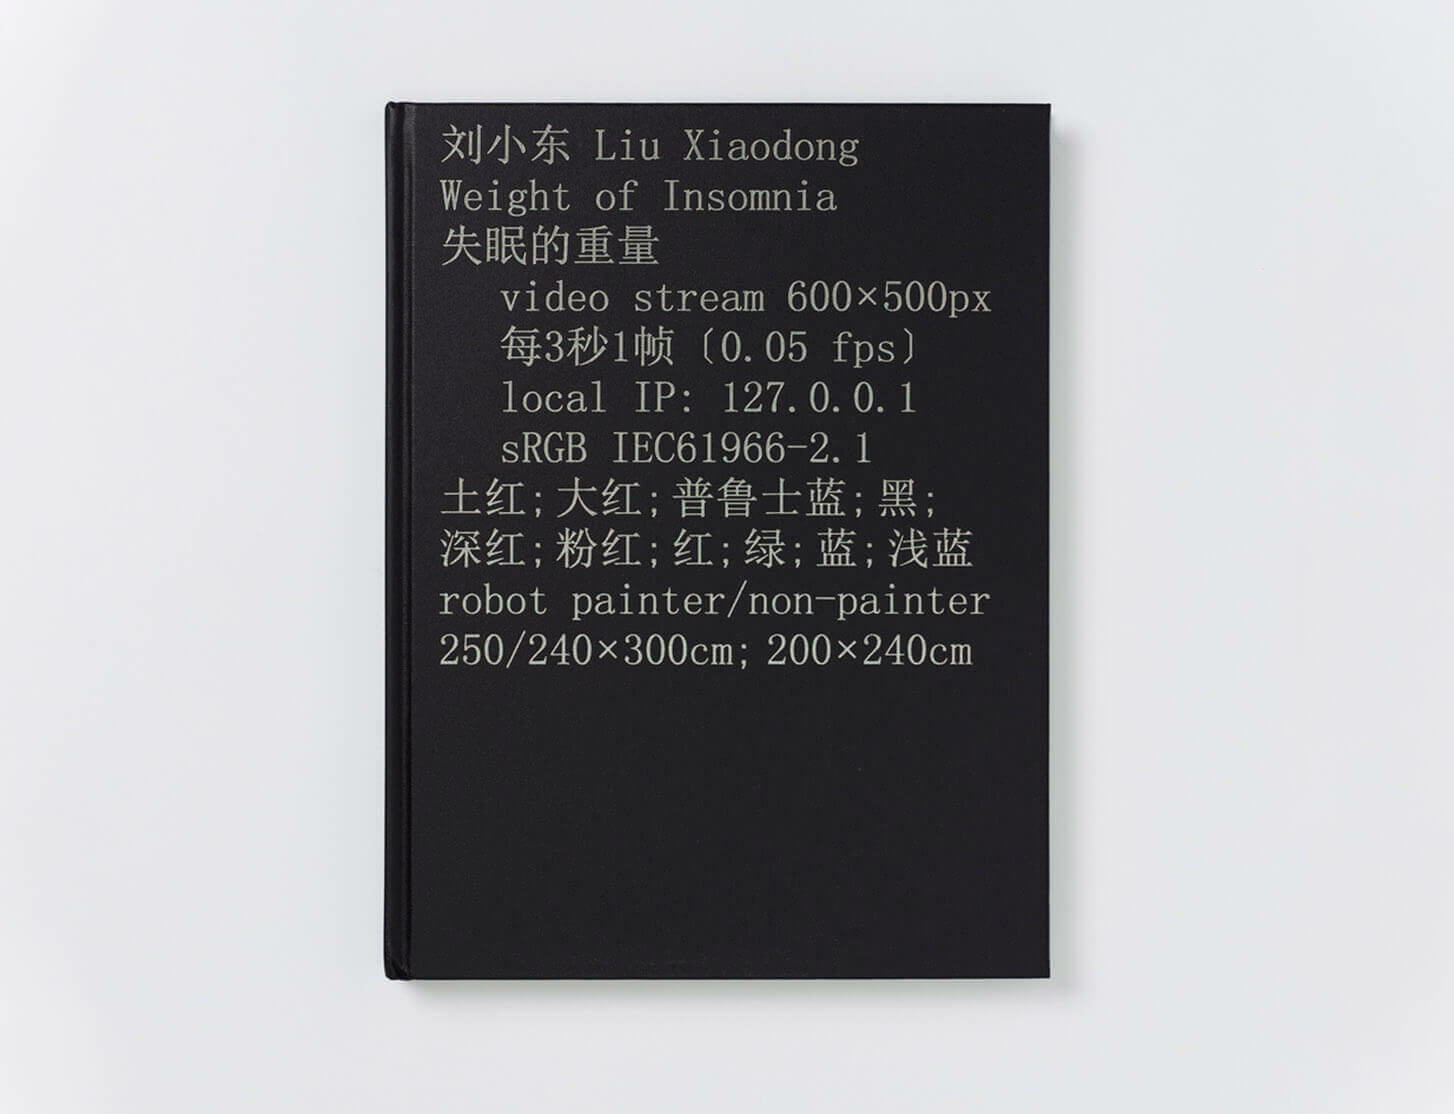 Liu Xiaodong 'Weight of Insomnia' catalogue available to purchase